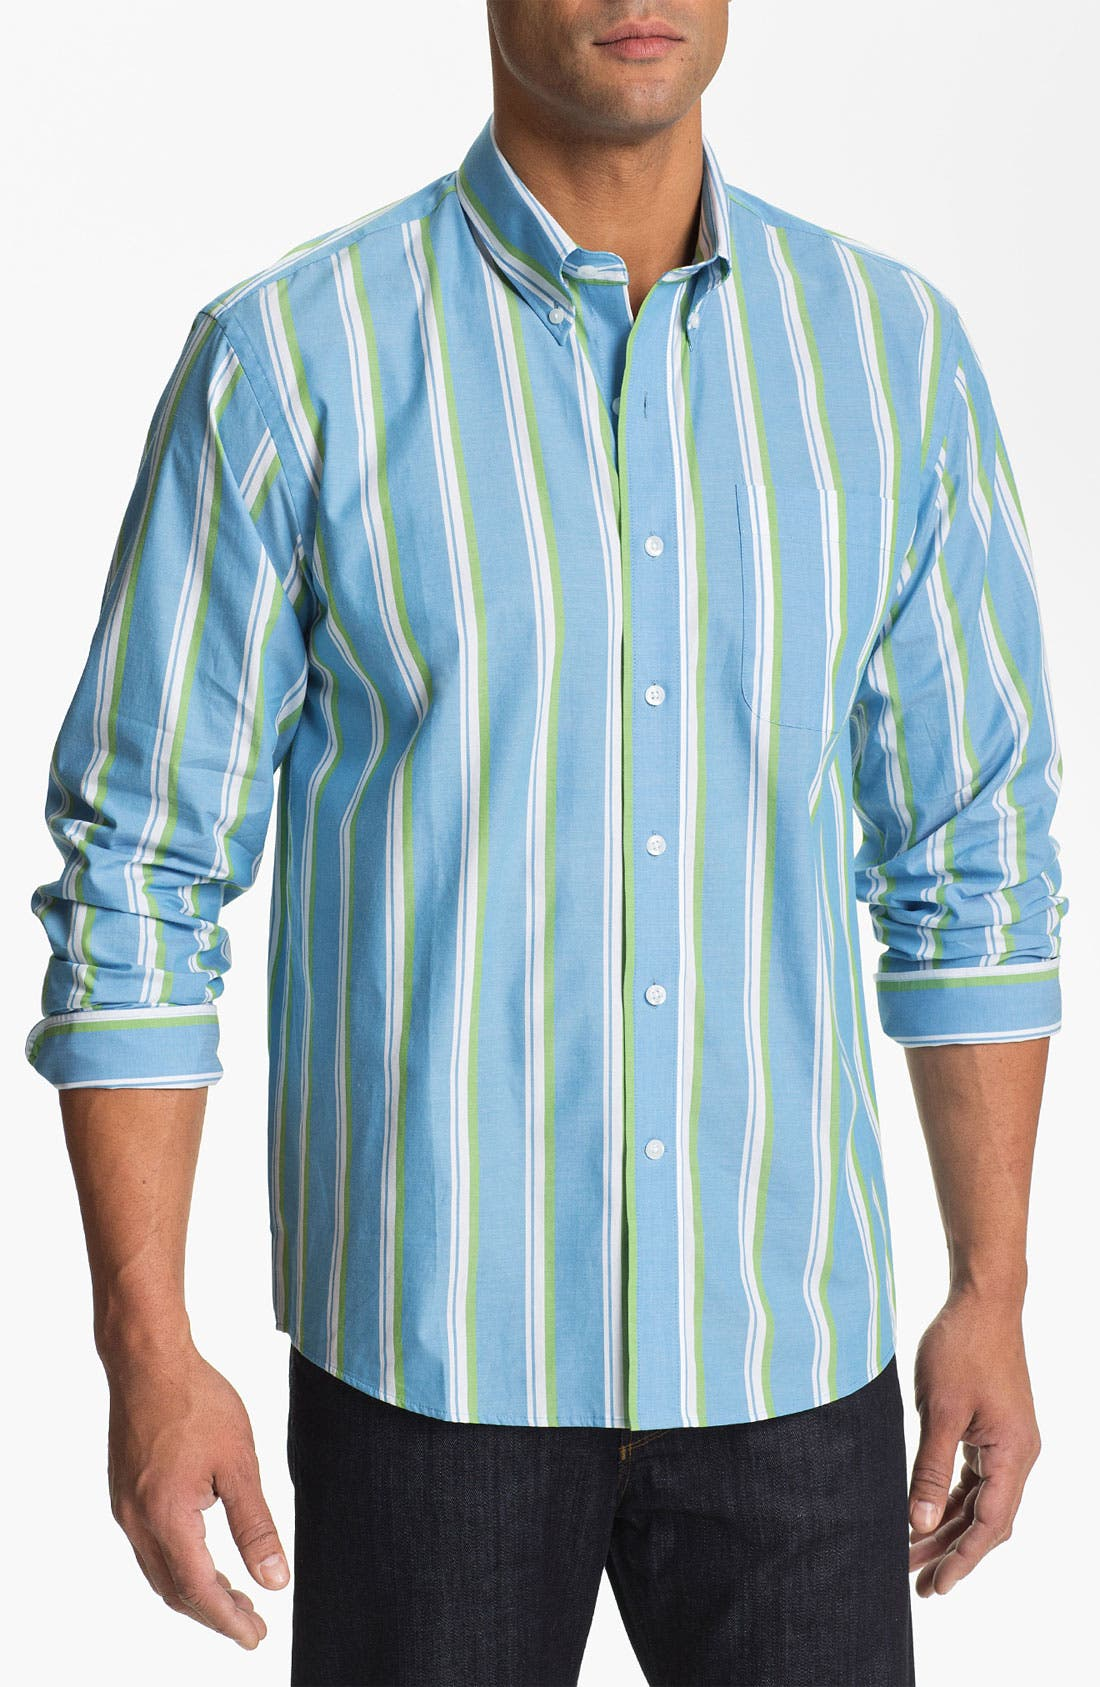 Alternate Image 1 Selected - Cutter & Buck 'Whitmire Stripe' Regular Fit Sport Shirt (Big & Tall)